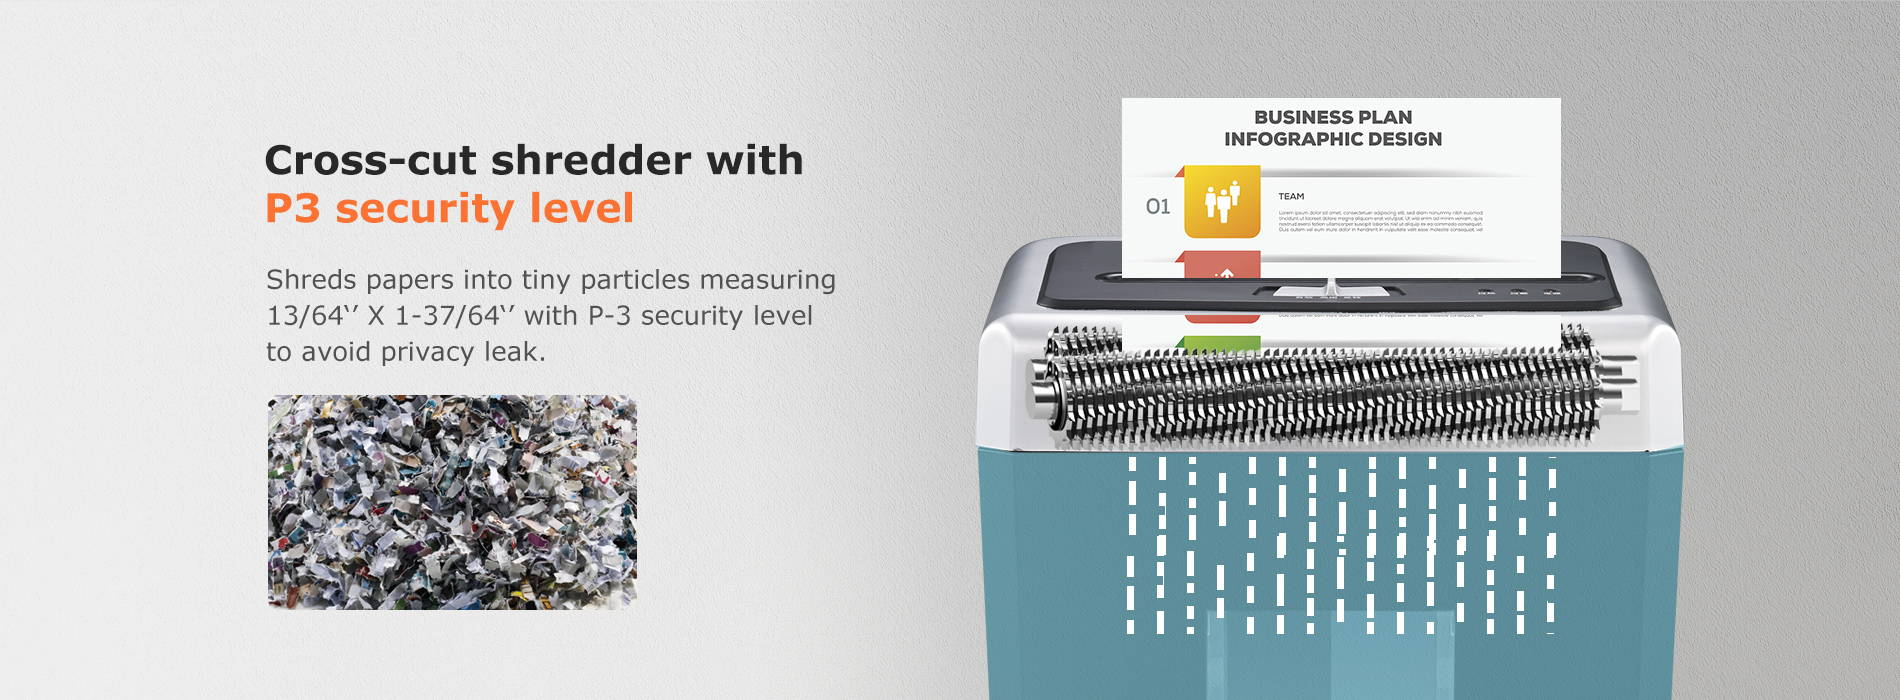 Cross-cut shredder with P3 security level  shreds papers into tiny particles measuring 13/64'' X 1-37/64'' with P-3 security level to avoid privacy leak.